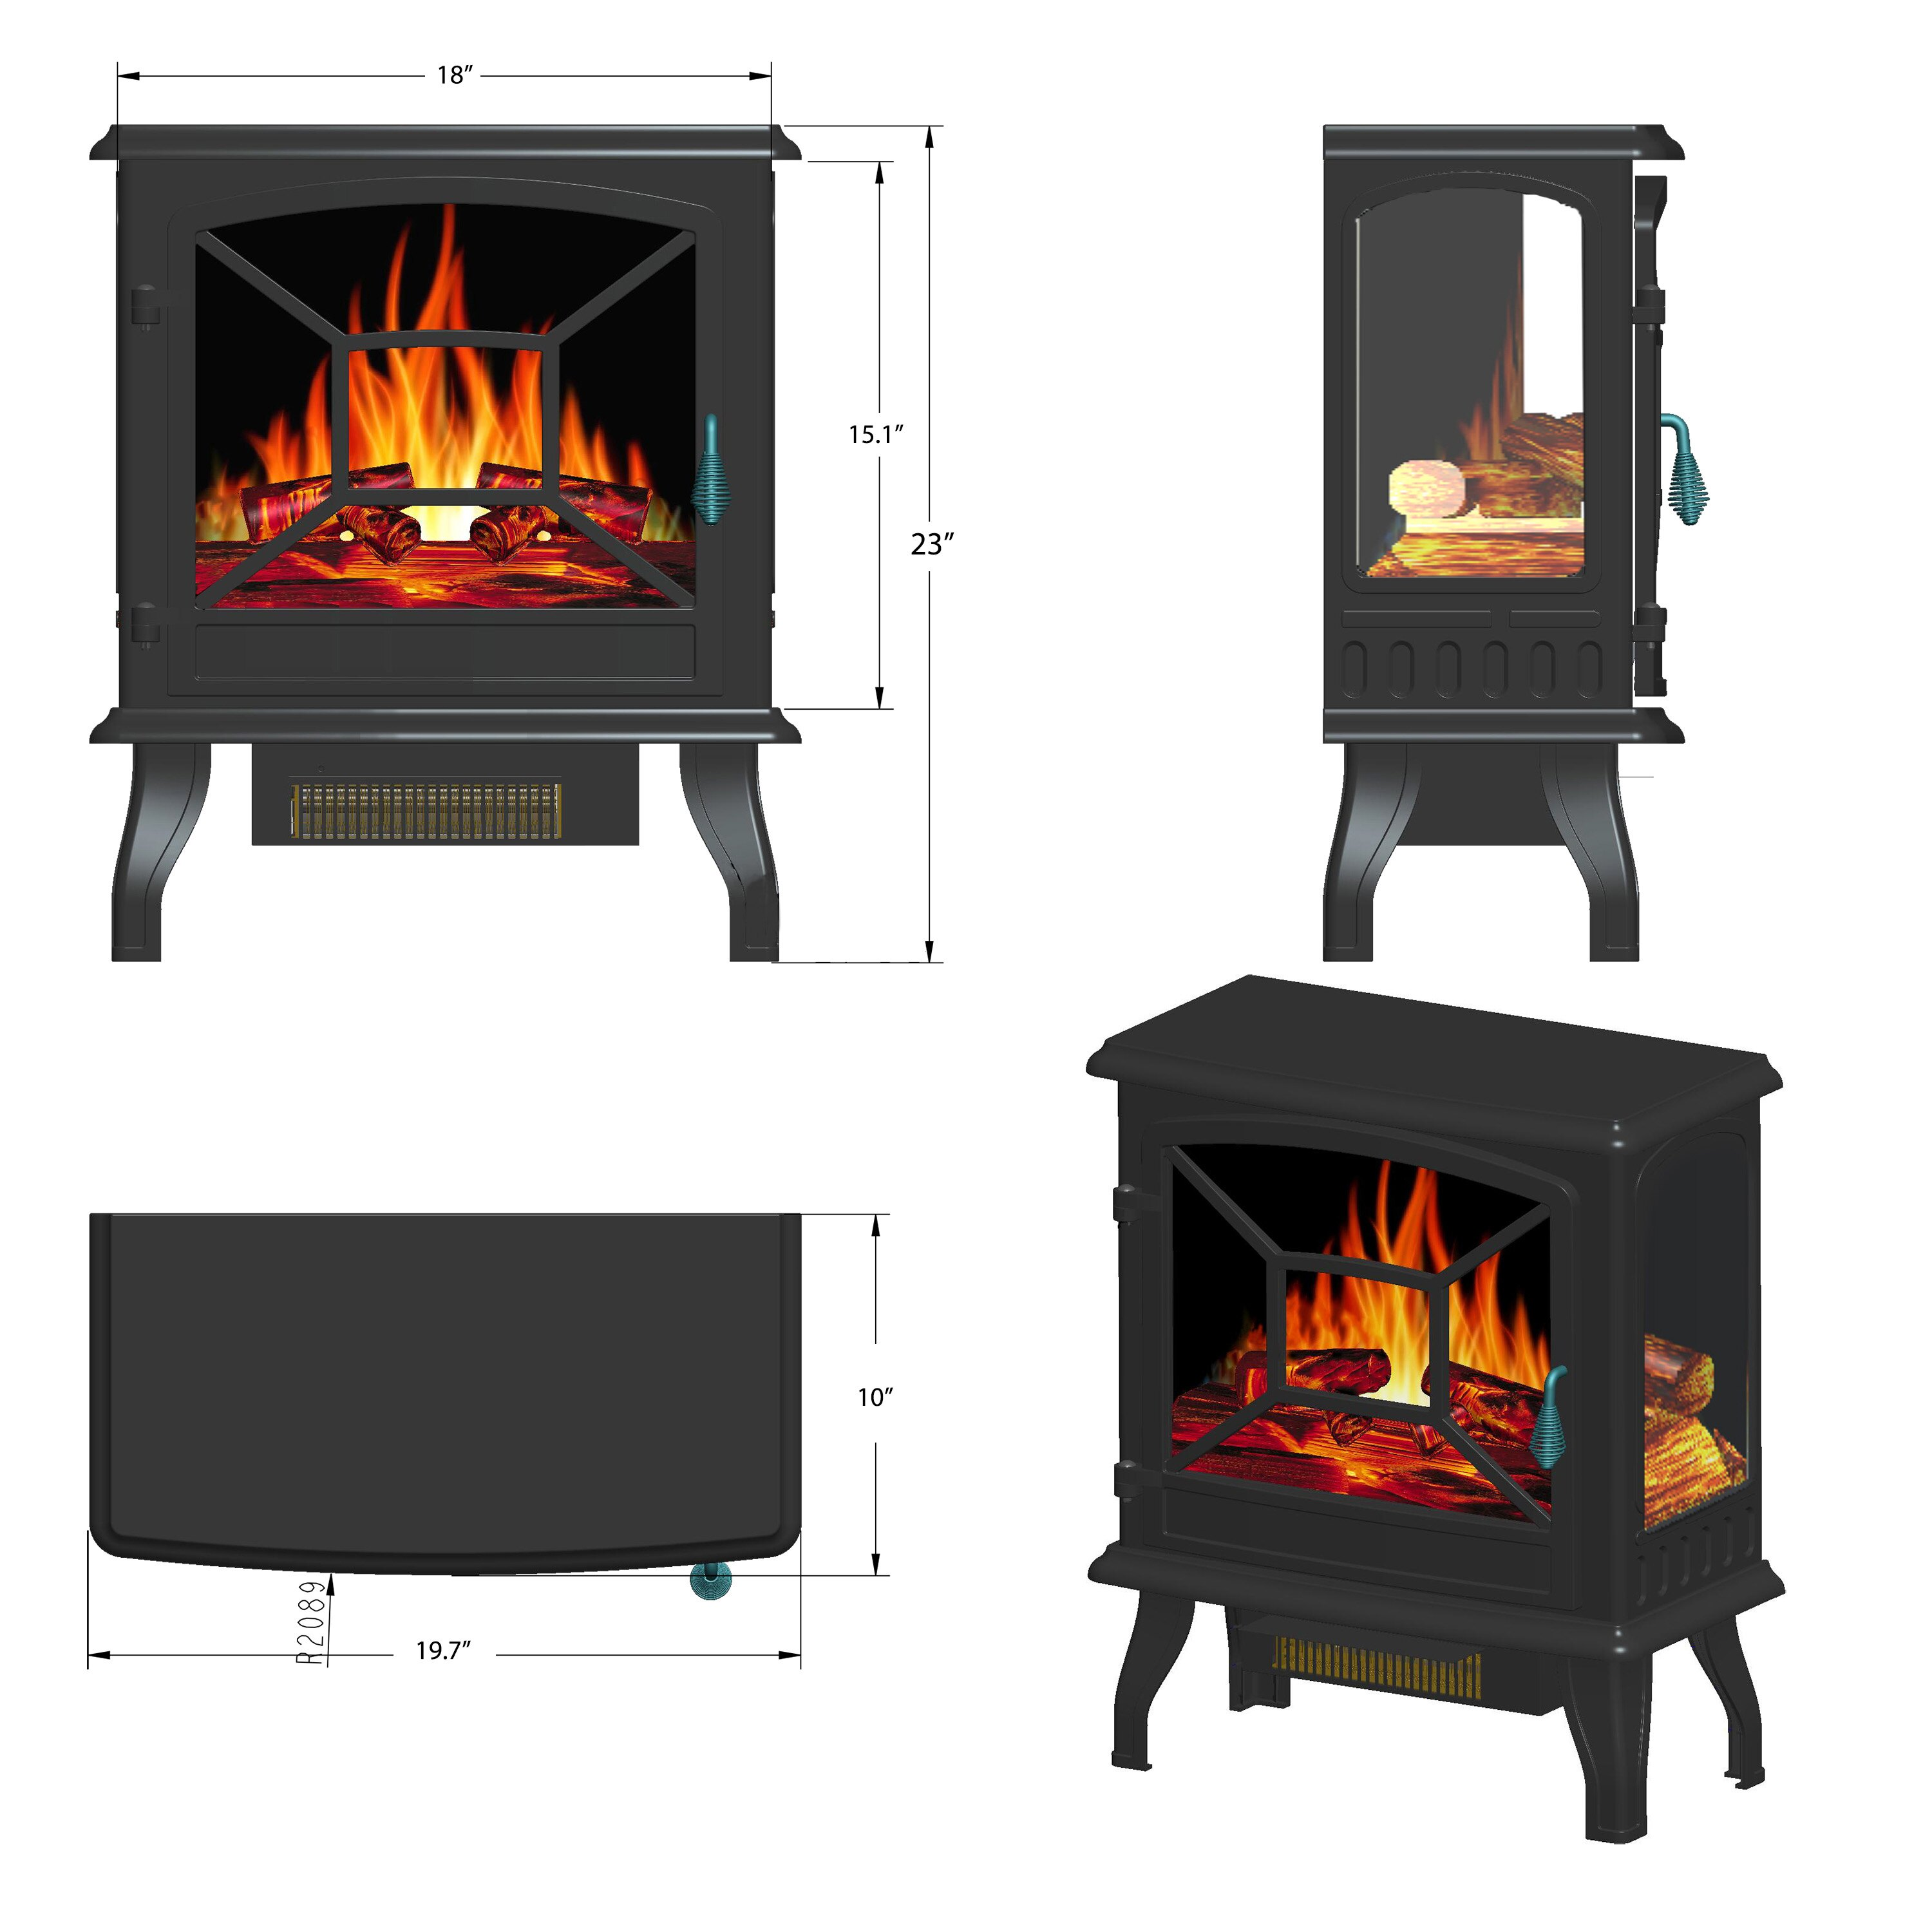 "AKDY 20"" Black Finish Freestanding Electric Fireplace Heater Stove 1"